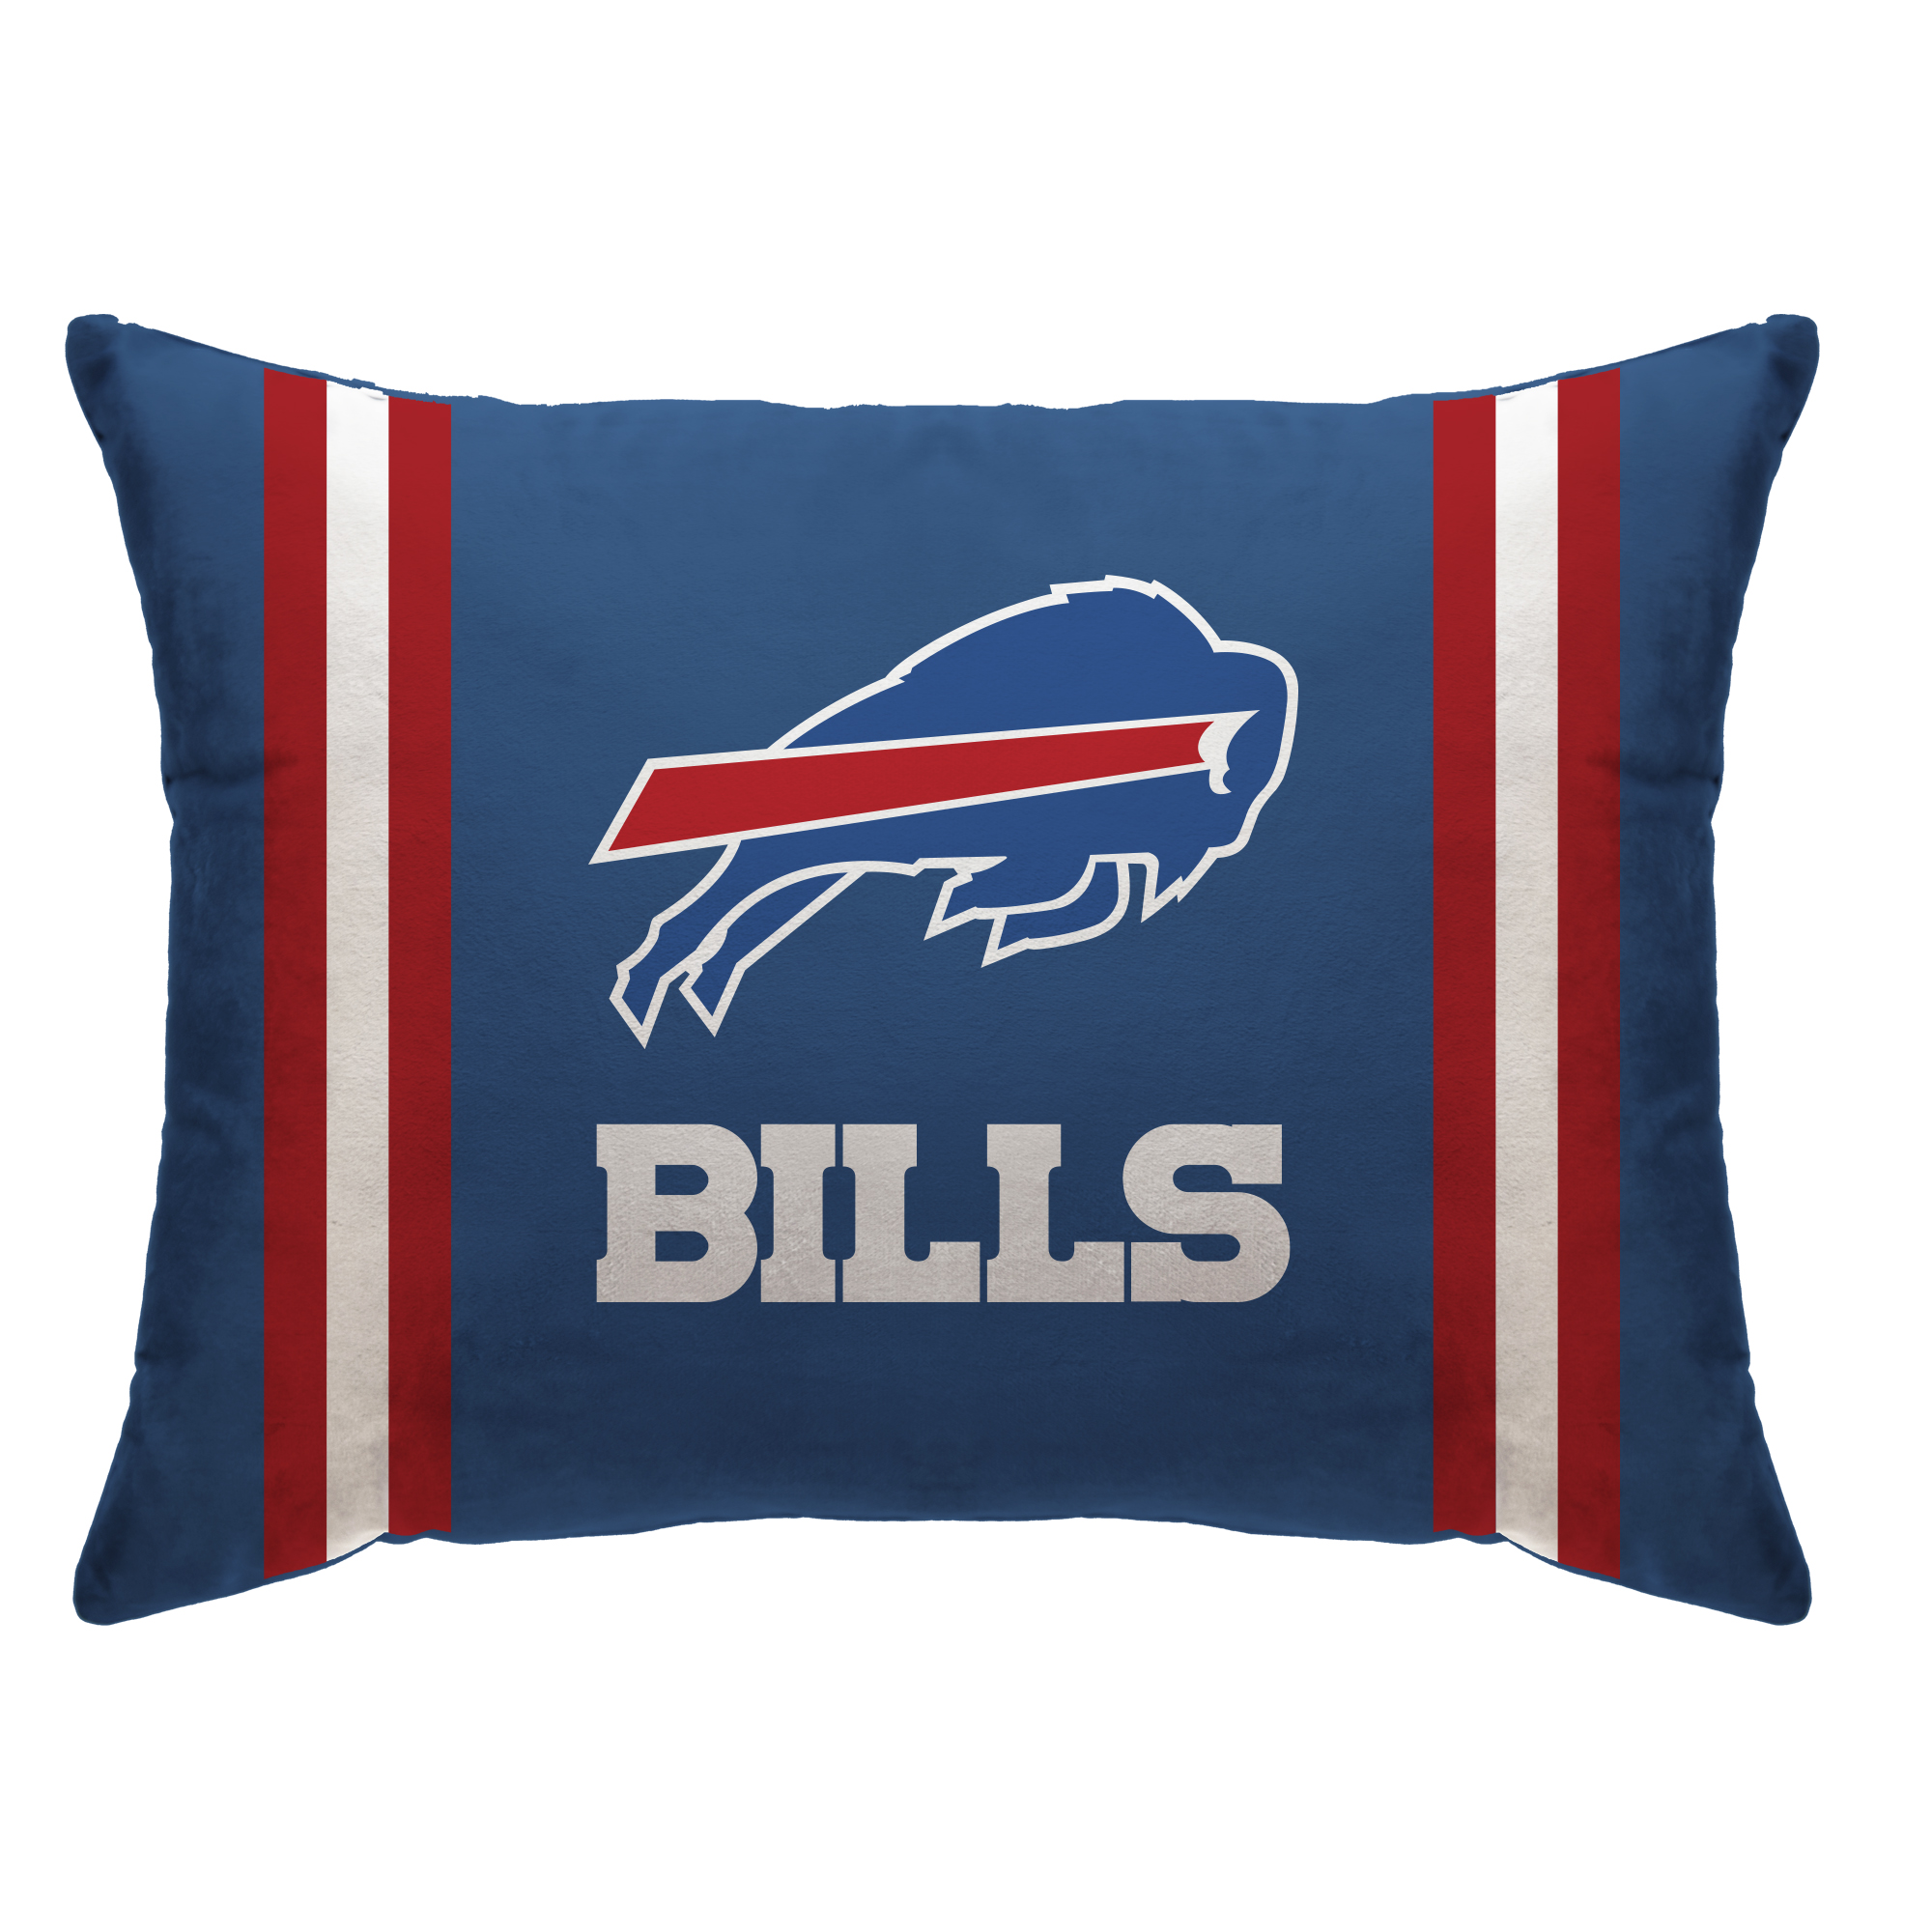 "Buffalo Bills 20"" x 26"" Plush Bed Pillow - Blue - No Size"